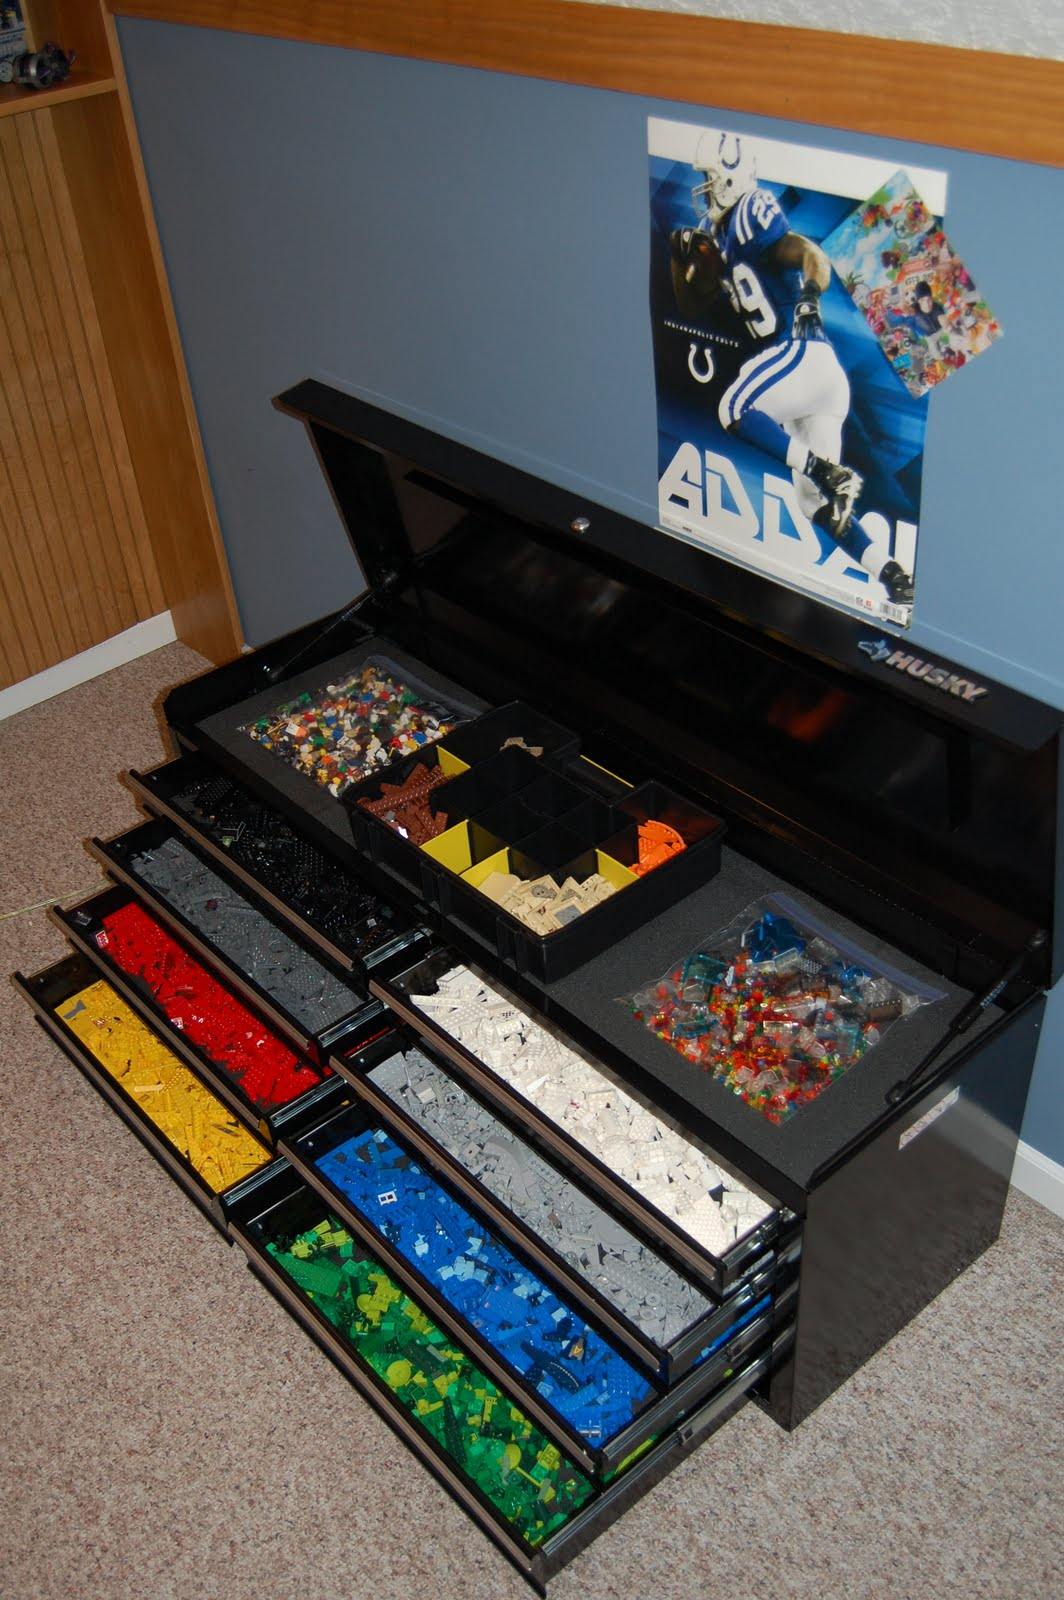 Q: What Are Your Suggestions For LEGO Storage With A Small Baby In The  House?